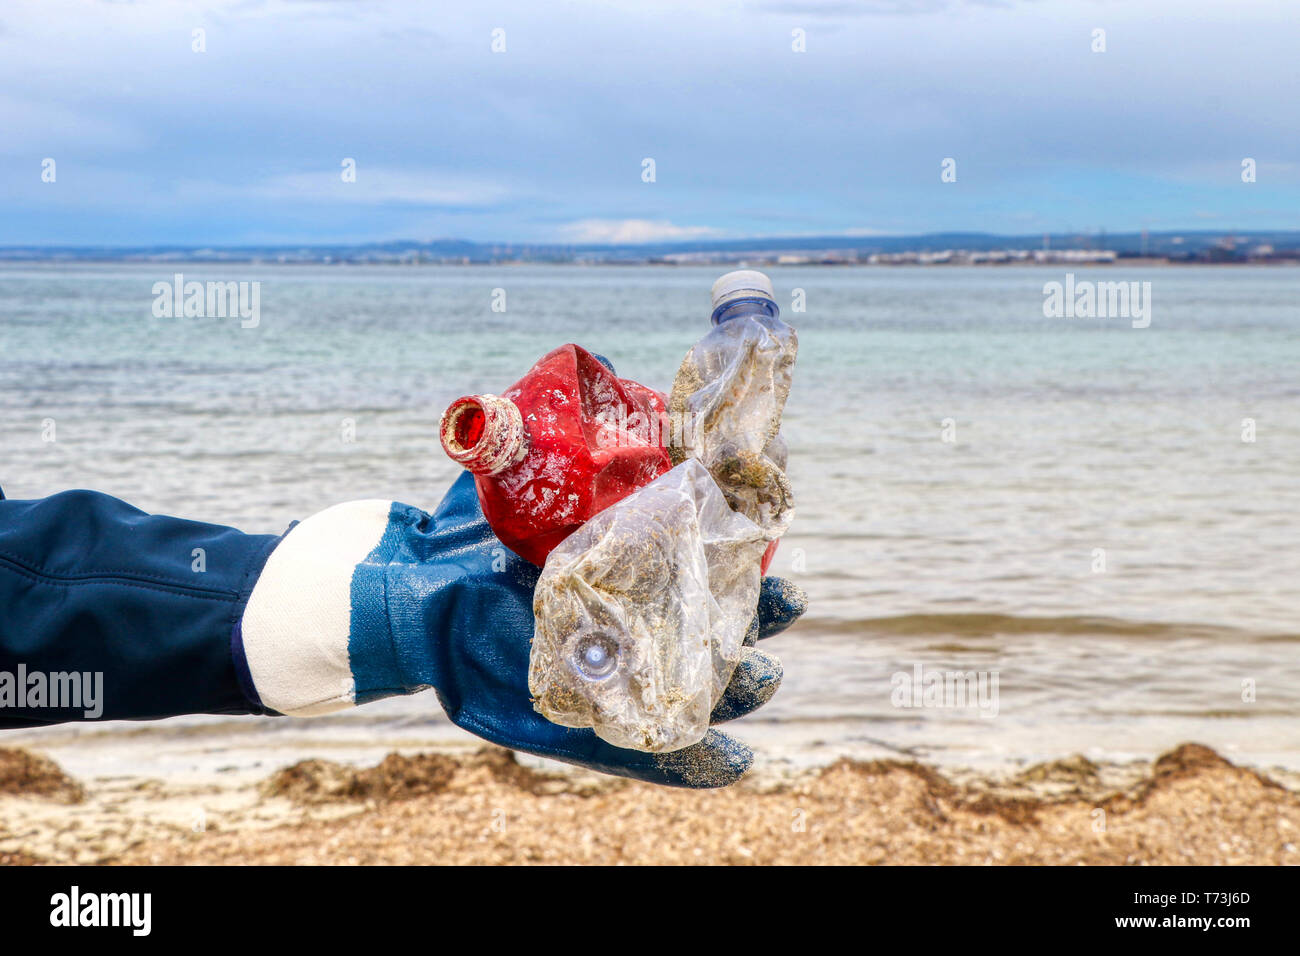 Woman collects plastic waste on a beach with covered shoreline of sea grass - Stock Image